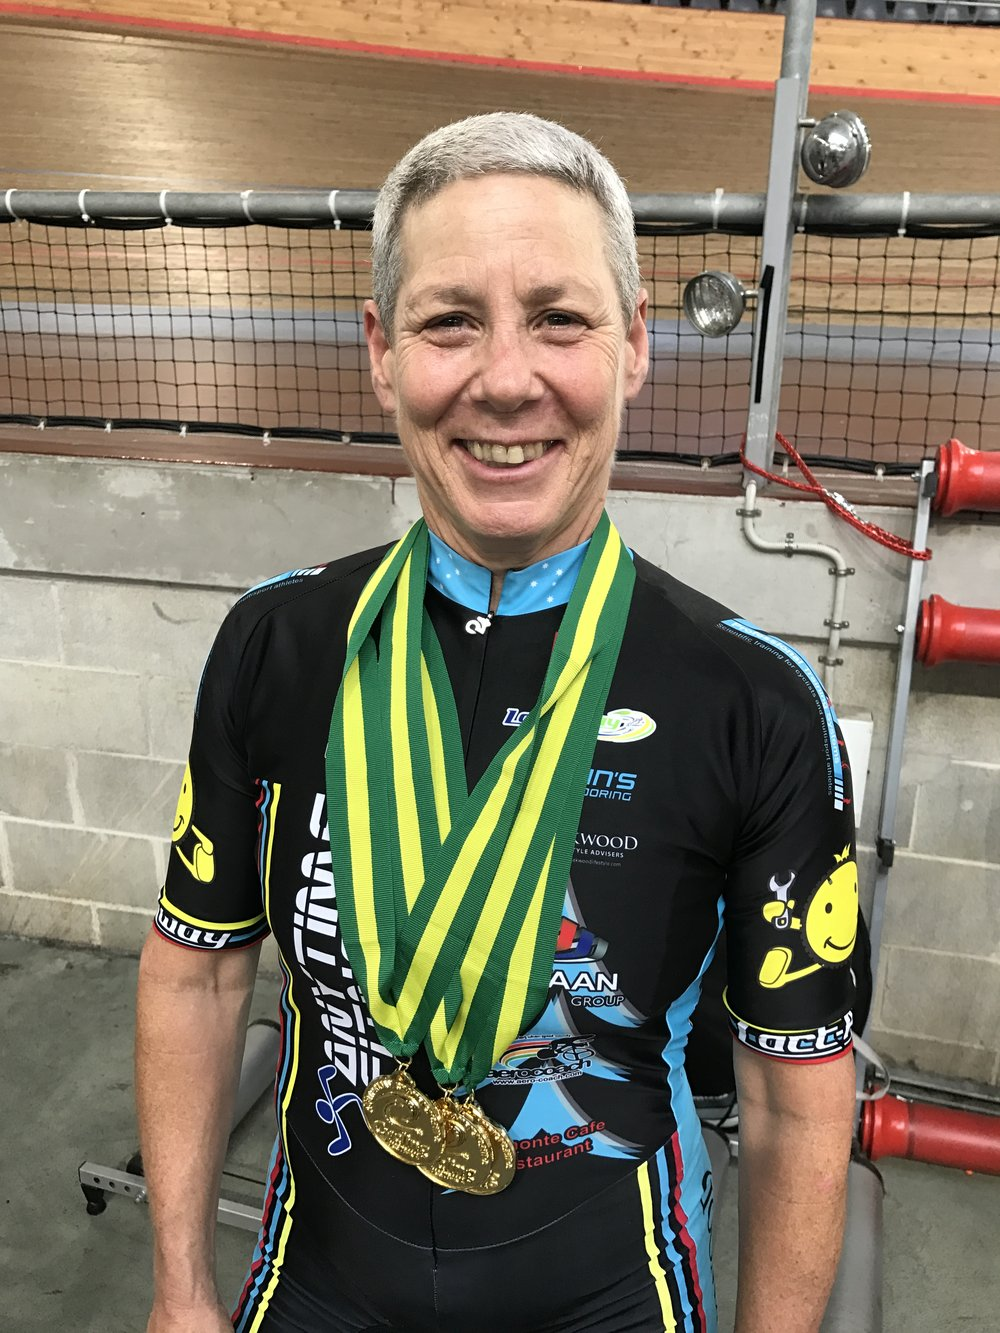 NSW Cyclist of the Year Awards for 2017 - Congratulations to Lise Benjamin (BiciSport Master) for taking out the M7 Category for her medal haul at the National Masters Track Championships in March 2017. The awards were made at the recent Clarence Street Cup event at DGV.